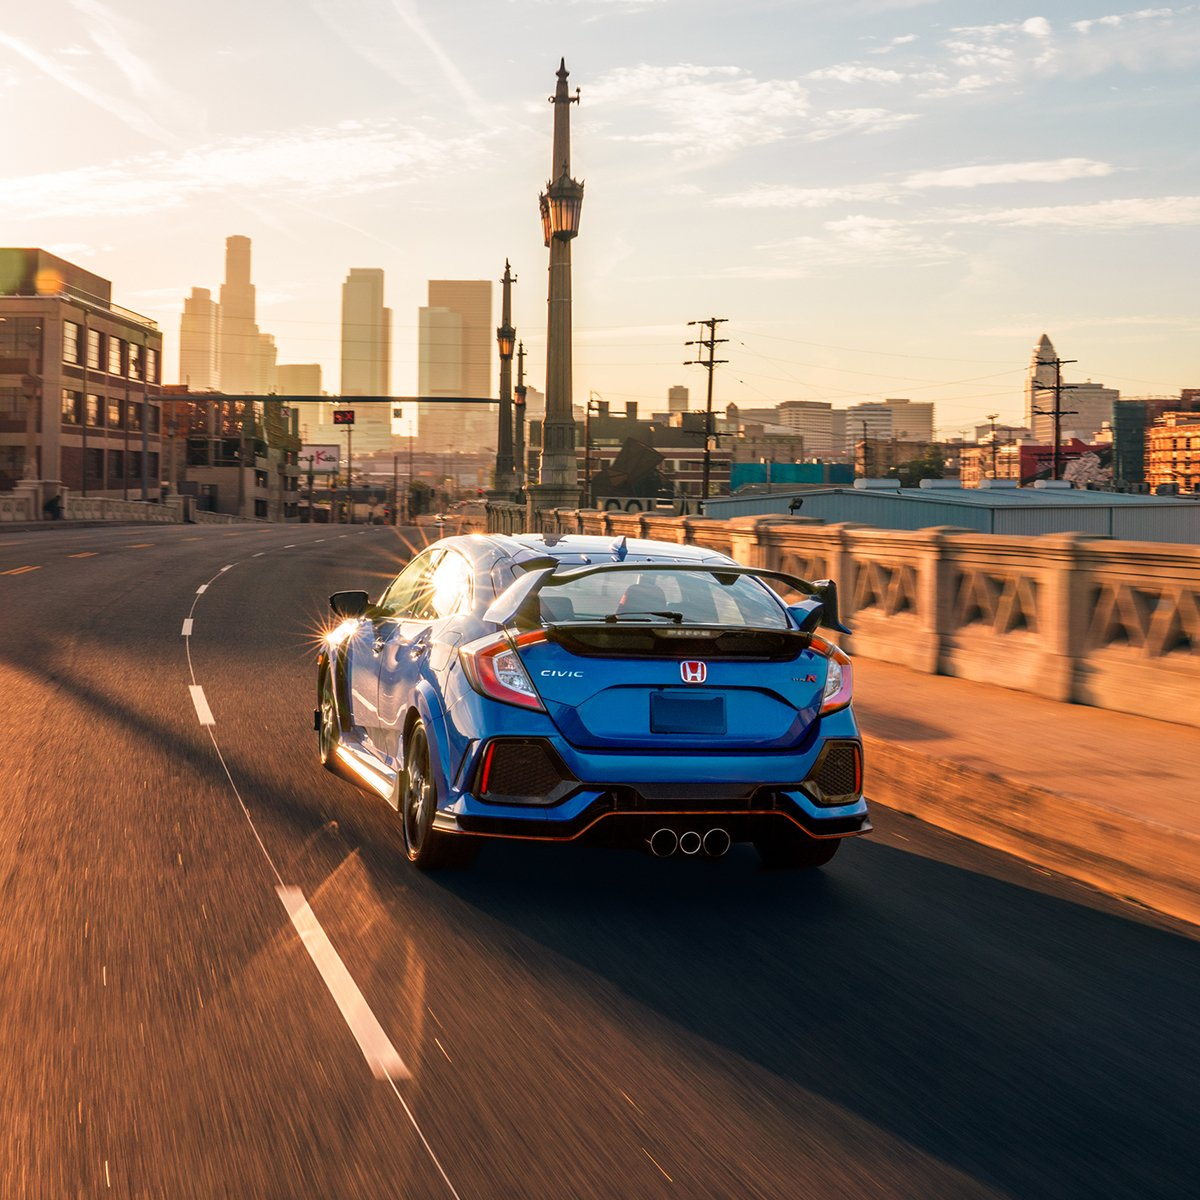 Seventy years of Honda engineering and ingenuity is brought to you in one vehicle: the #CivicTypeR, equipped with a 2.0-liter VTEC® turbocharged engine.